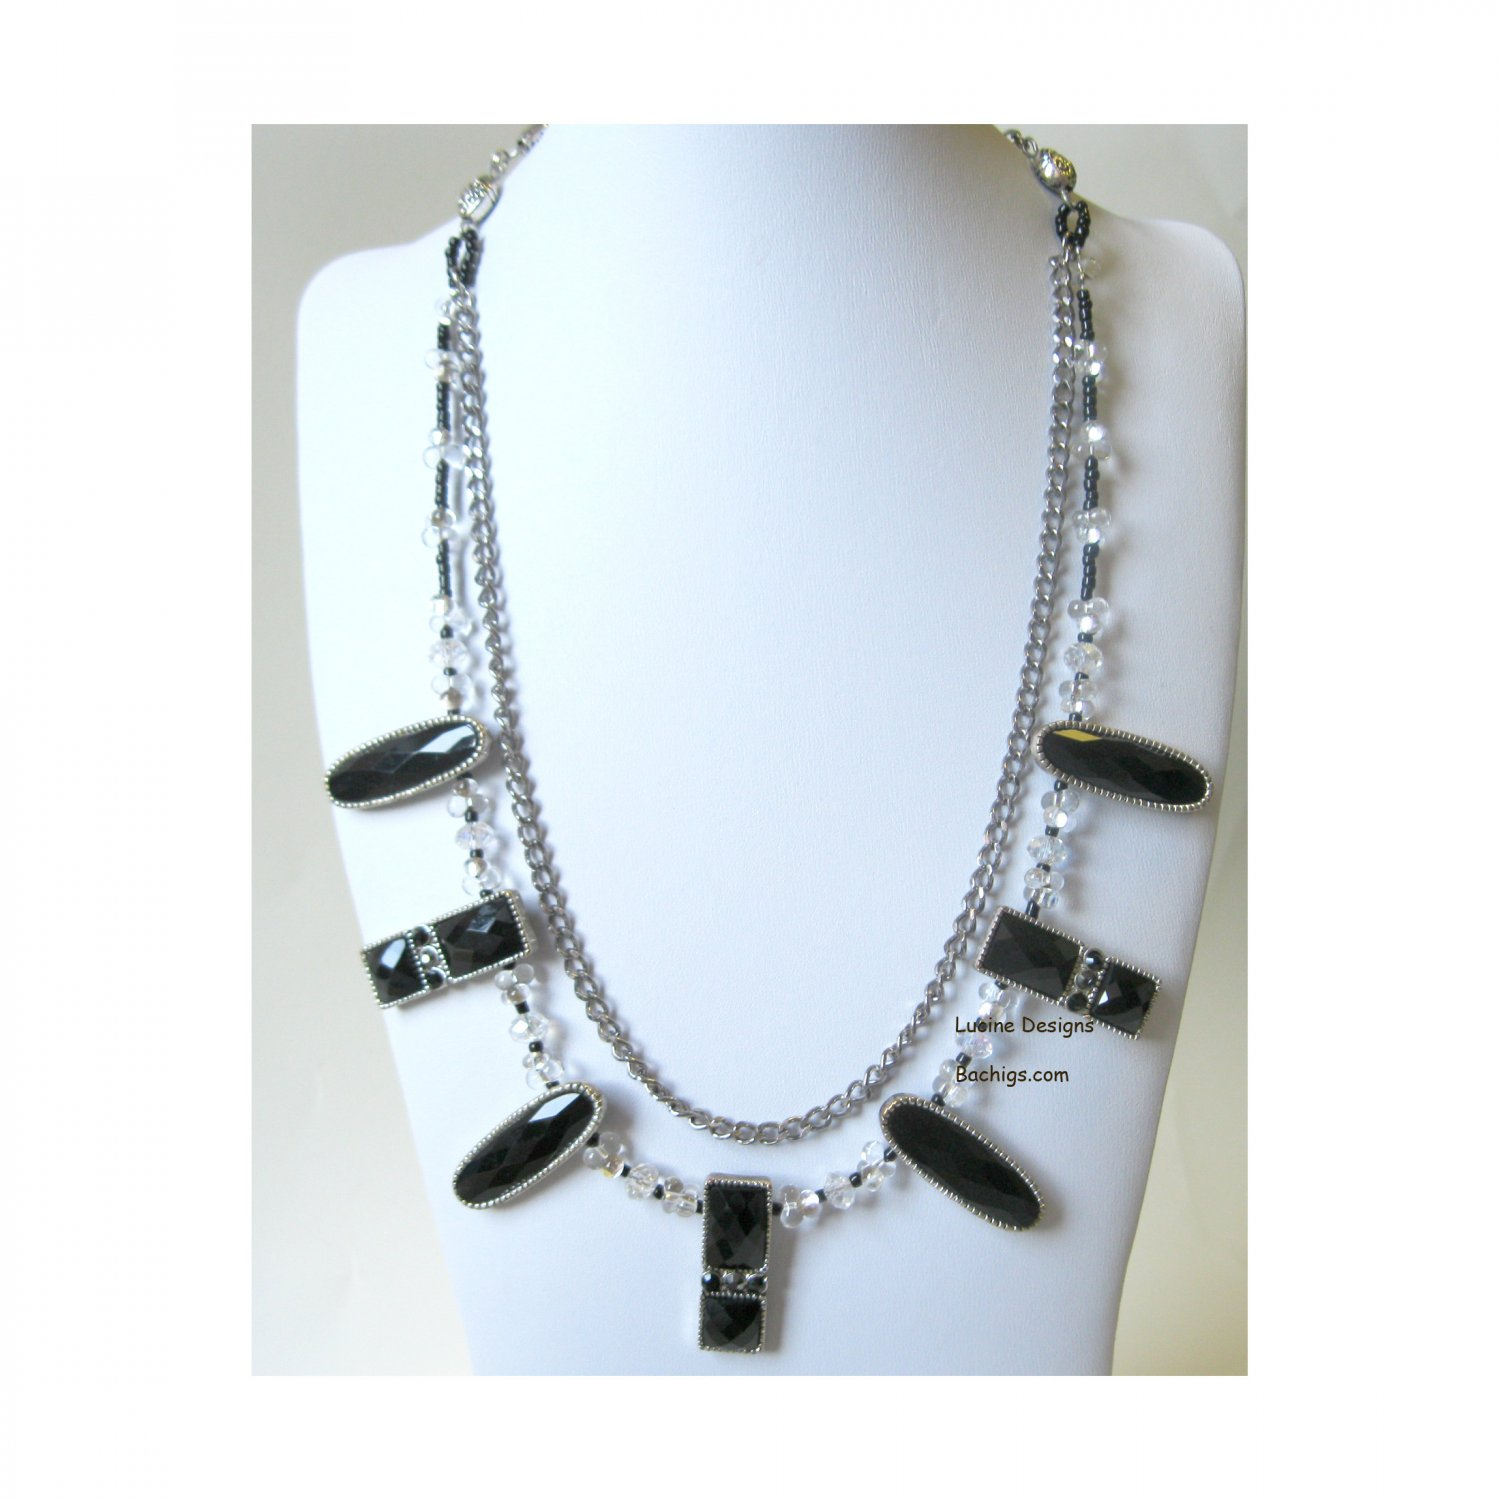 OOAK black and silver chain layered fashion necklace